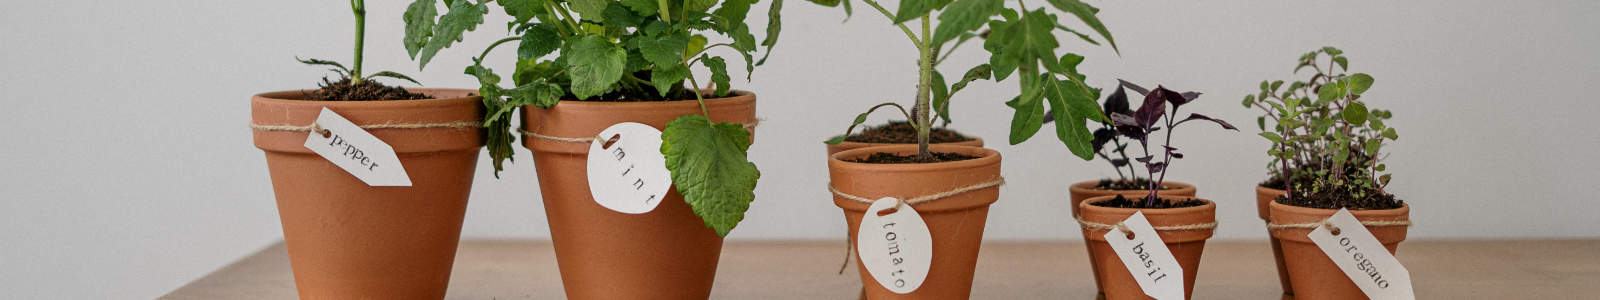 image of several flower pots with edible plants growing in them and white tags identifying the plants